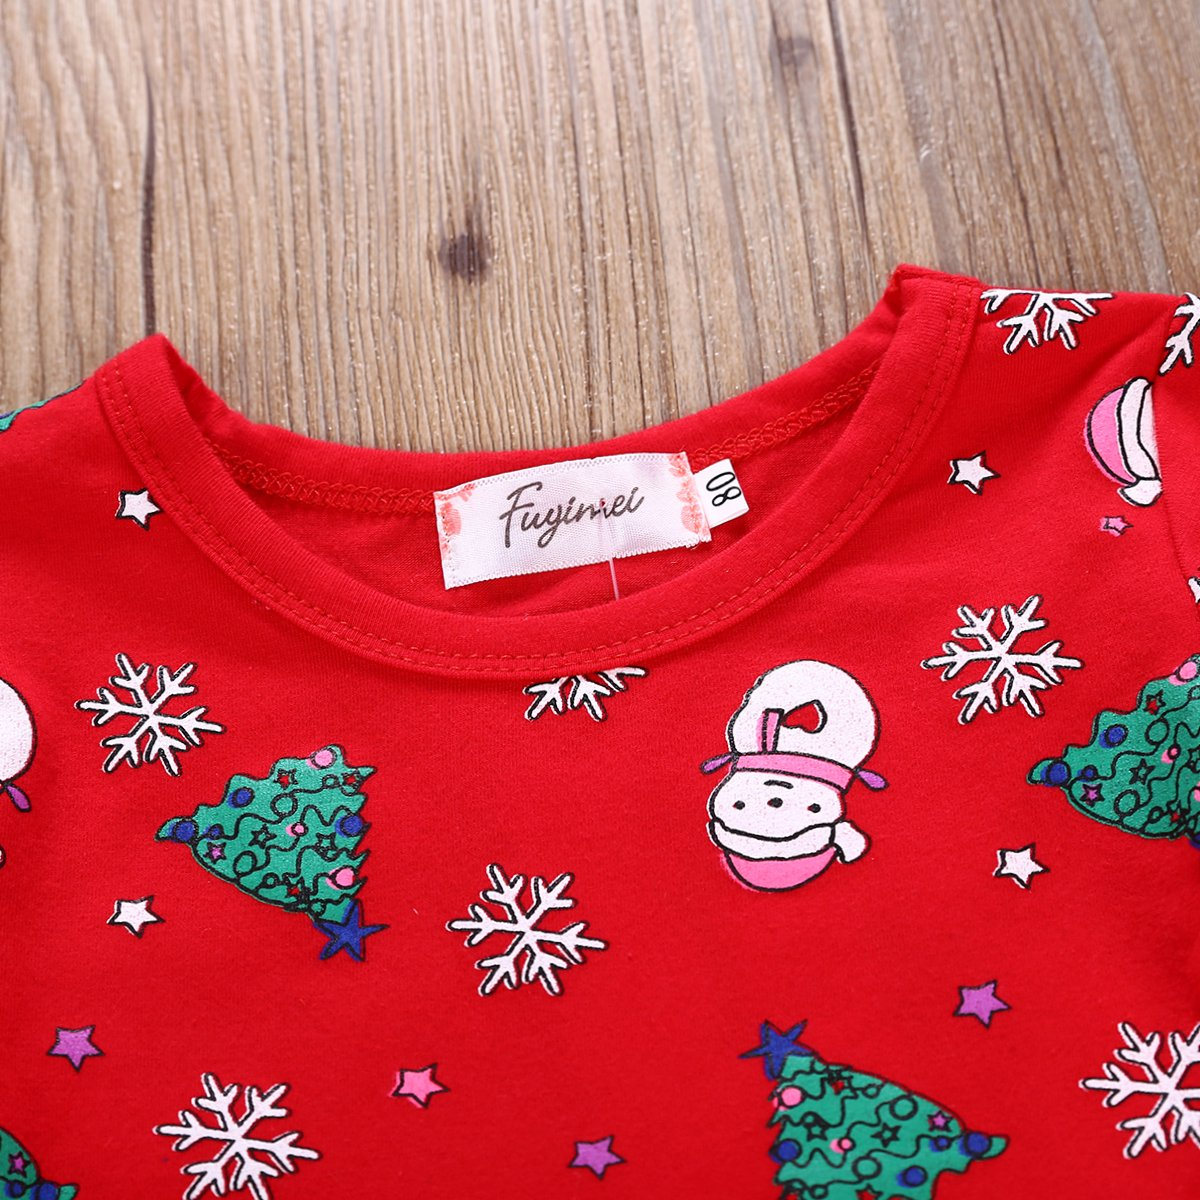 GRNSHTS Baby Girls Christmas Dresses Clothes Floral Deer Sleeveless Outfits